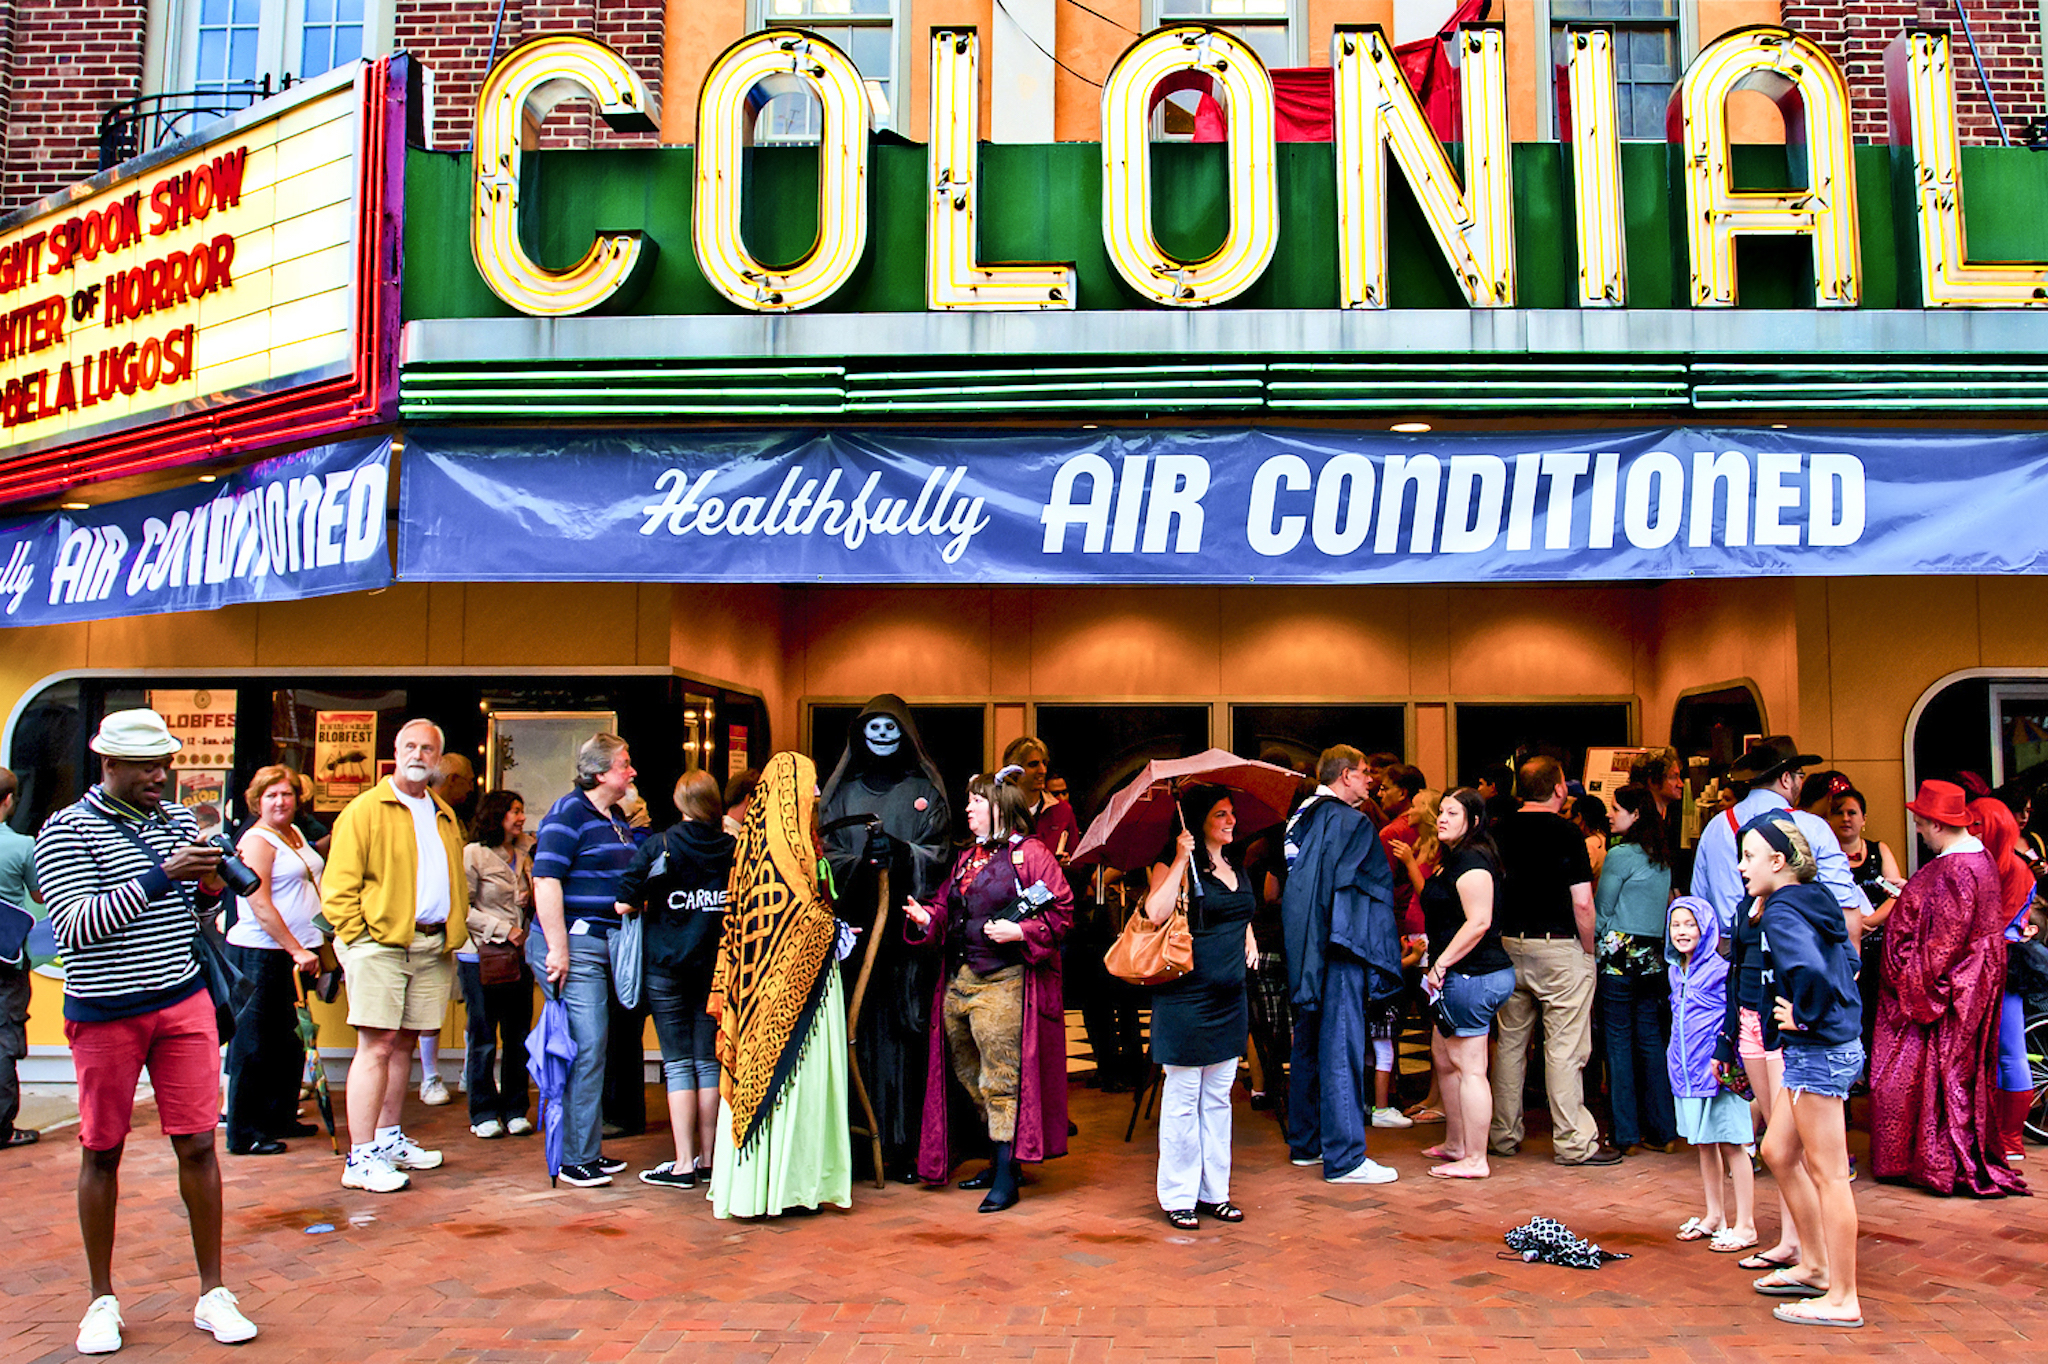 The Colonial Theatre, where the Blob was filmed, holds Blobfest every summer.